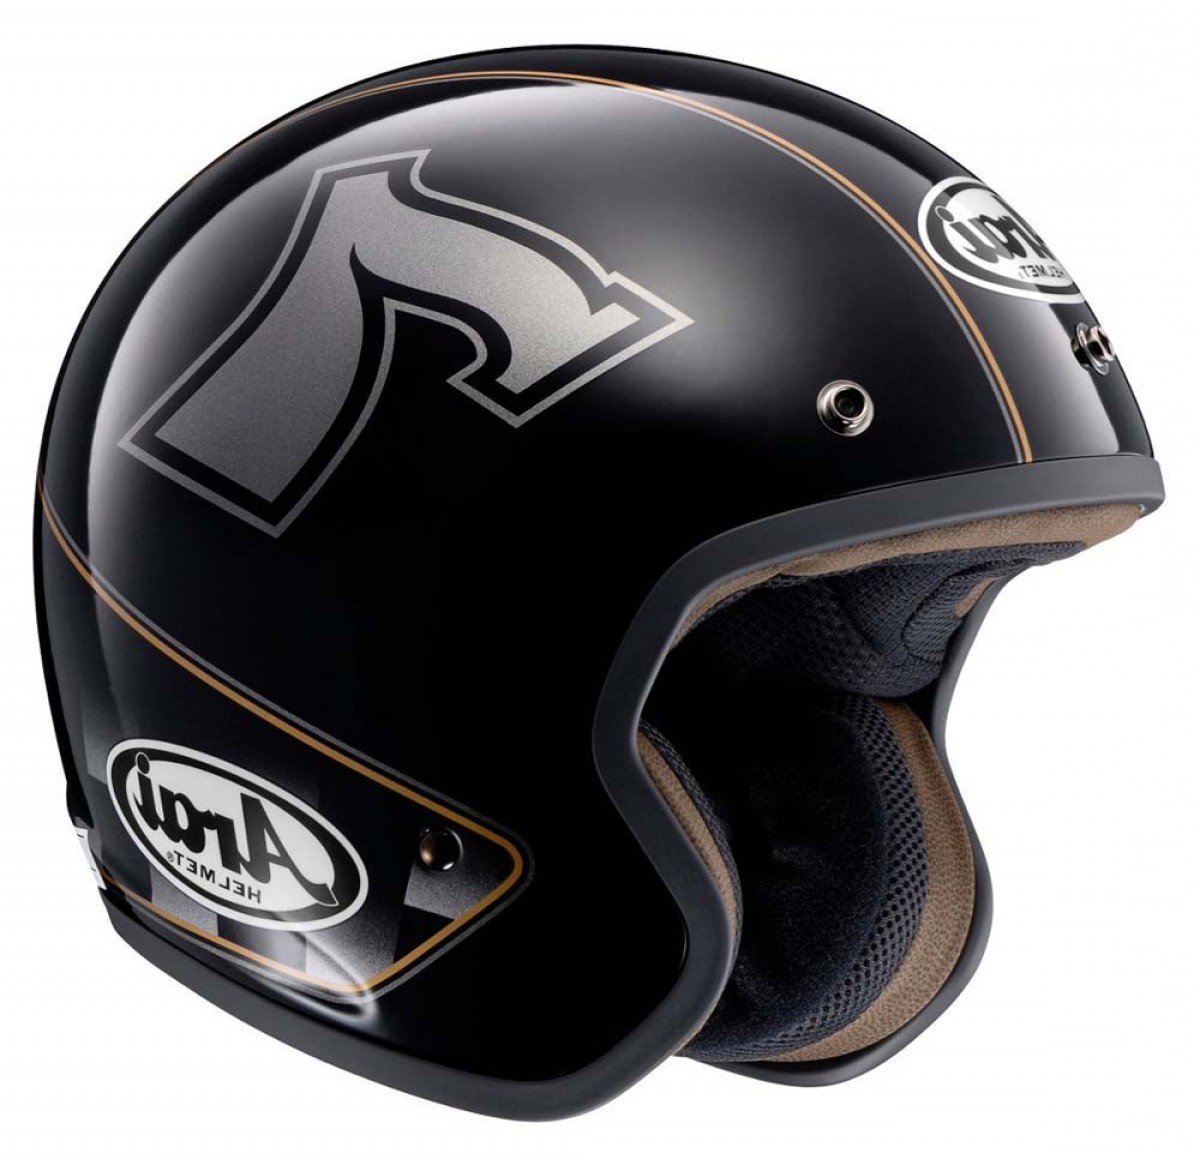 Arai Vector 2 Model: Arai Freeway Classic Cafe Racer Jet Black Helmetsarai Helmet Clearance High Quality P